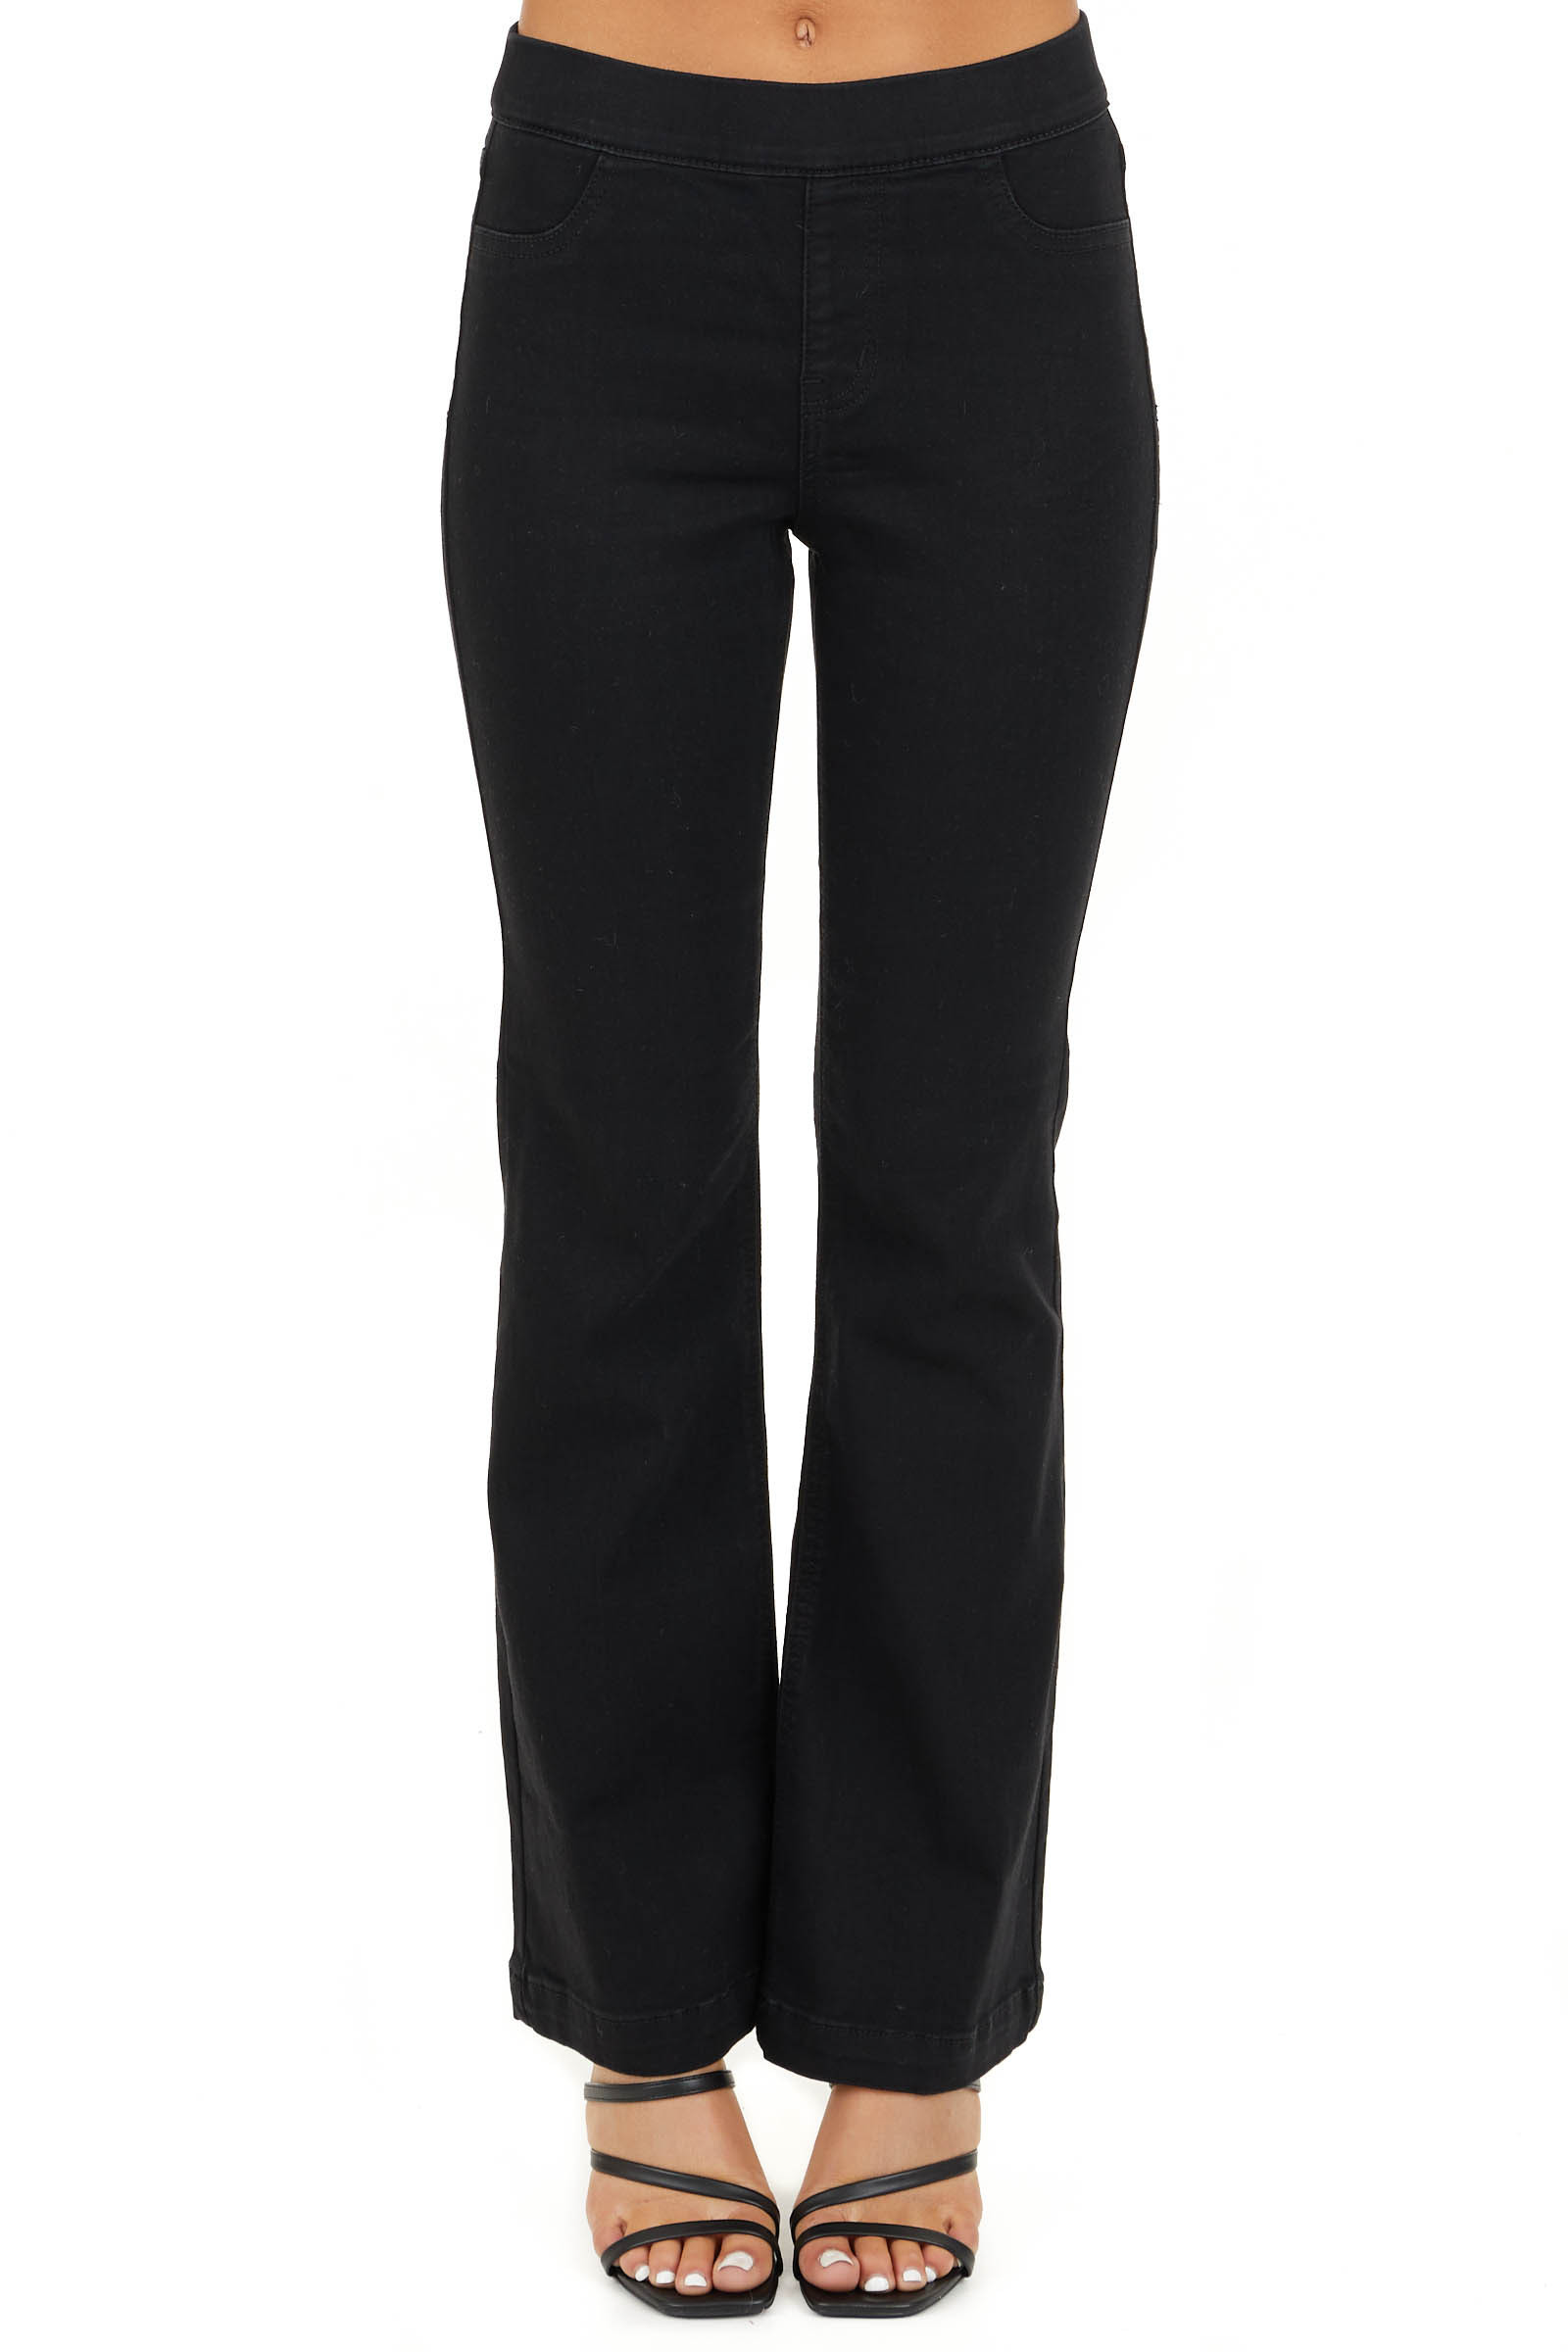 Black Solid Denim Flare Jeggings with Elastic Waistband front view